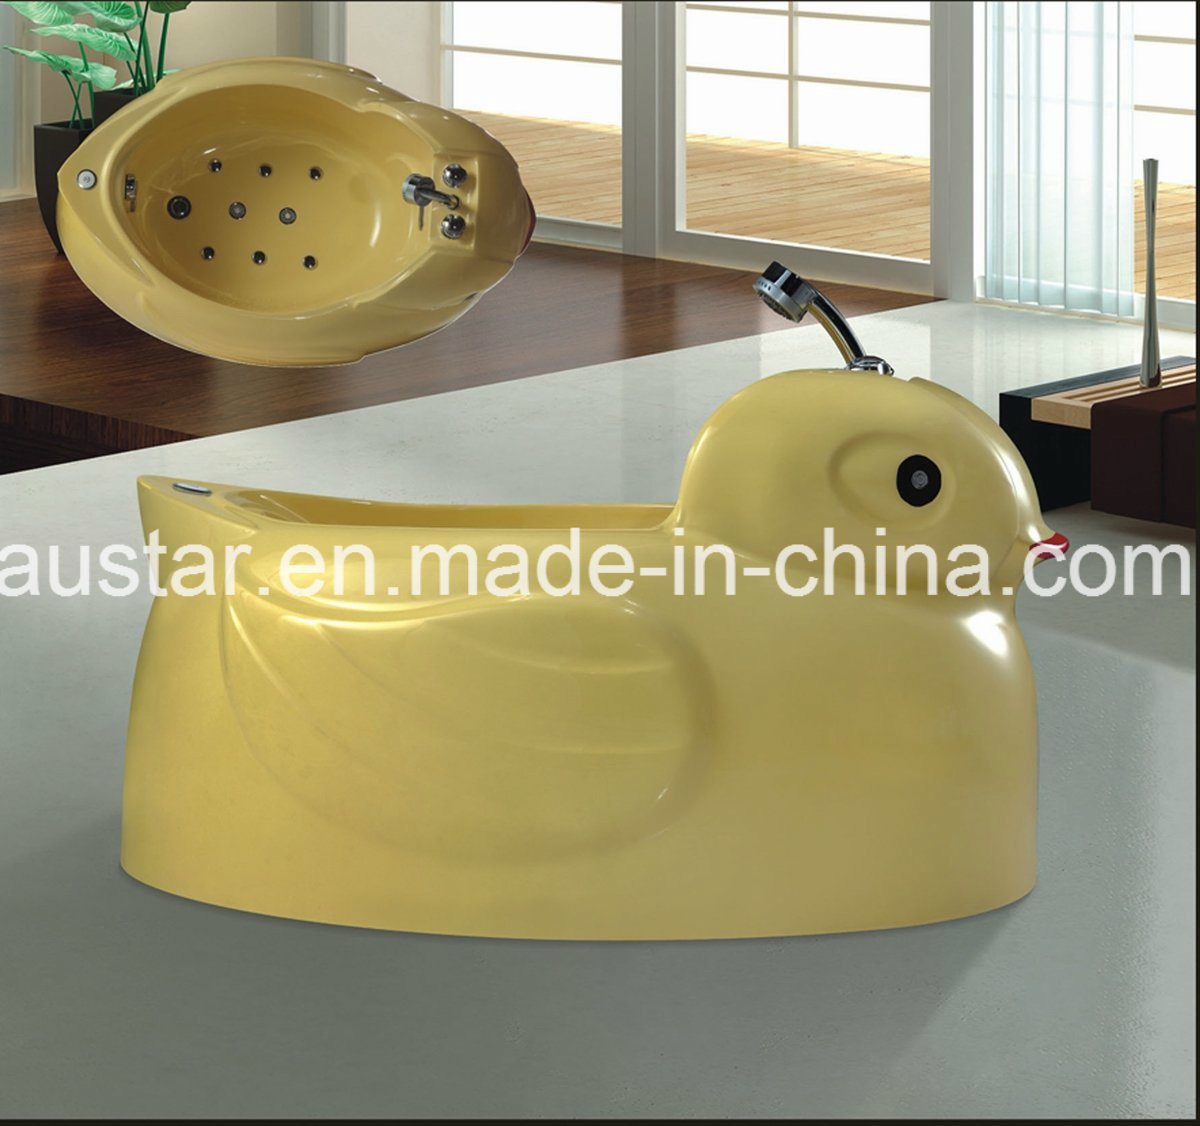 Cute Little Yellow Duck SPA Massage Bathtub SPA Special for Baby (AT-LW109)